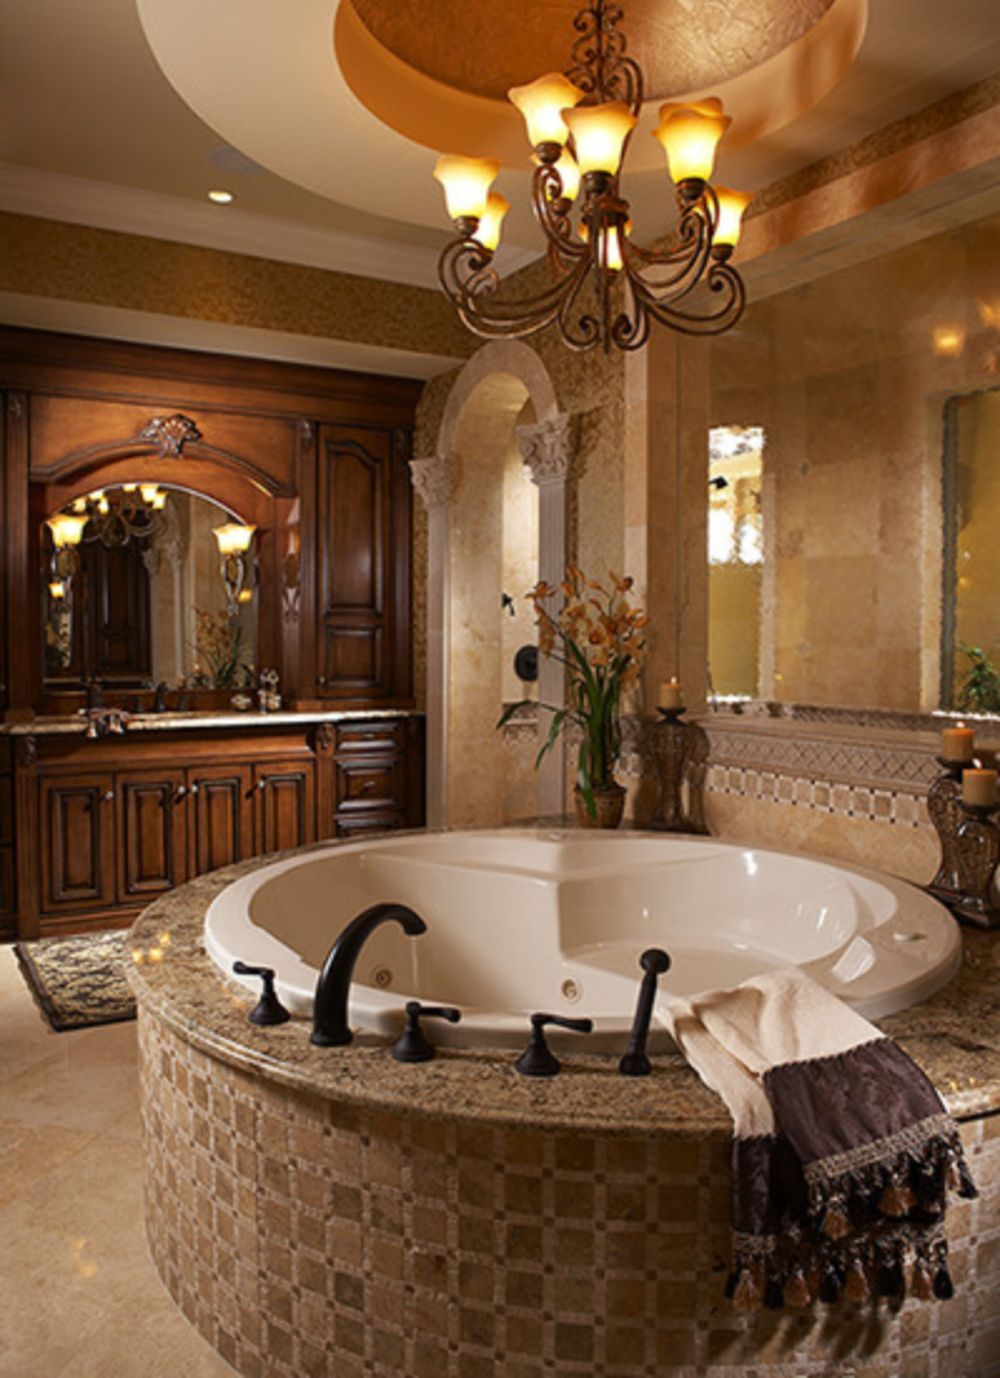 40 fabulous mediterranean bathroom design ideas | mediterranean